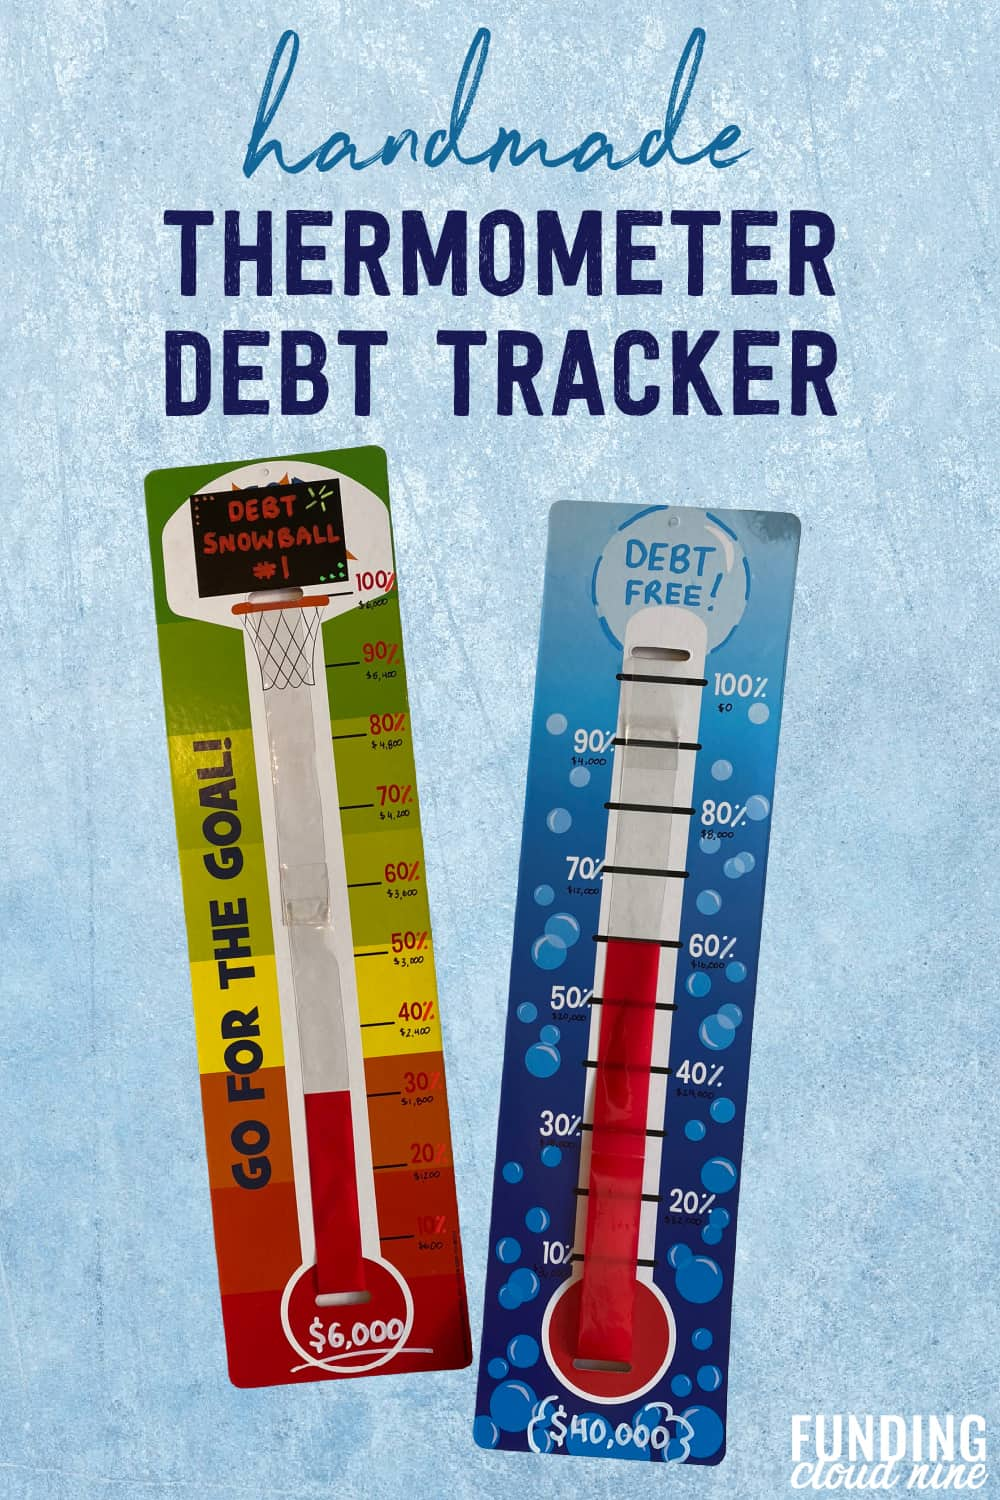 Stay motivated to pay off your debt by tracking your debt with a thermometer debt tracker